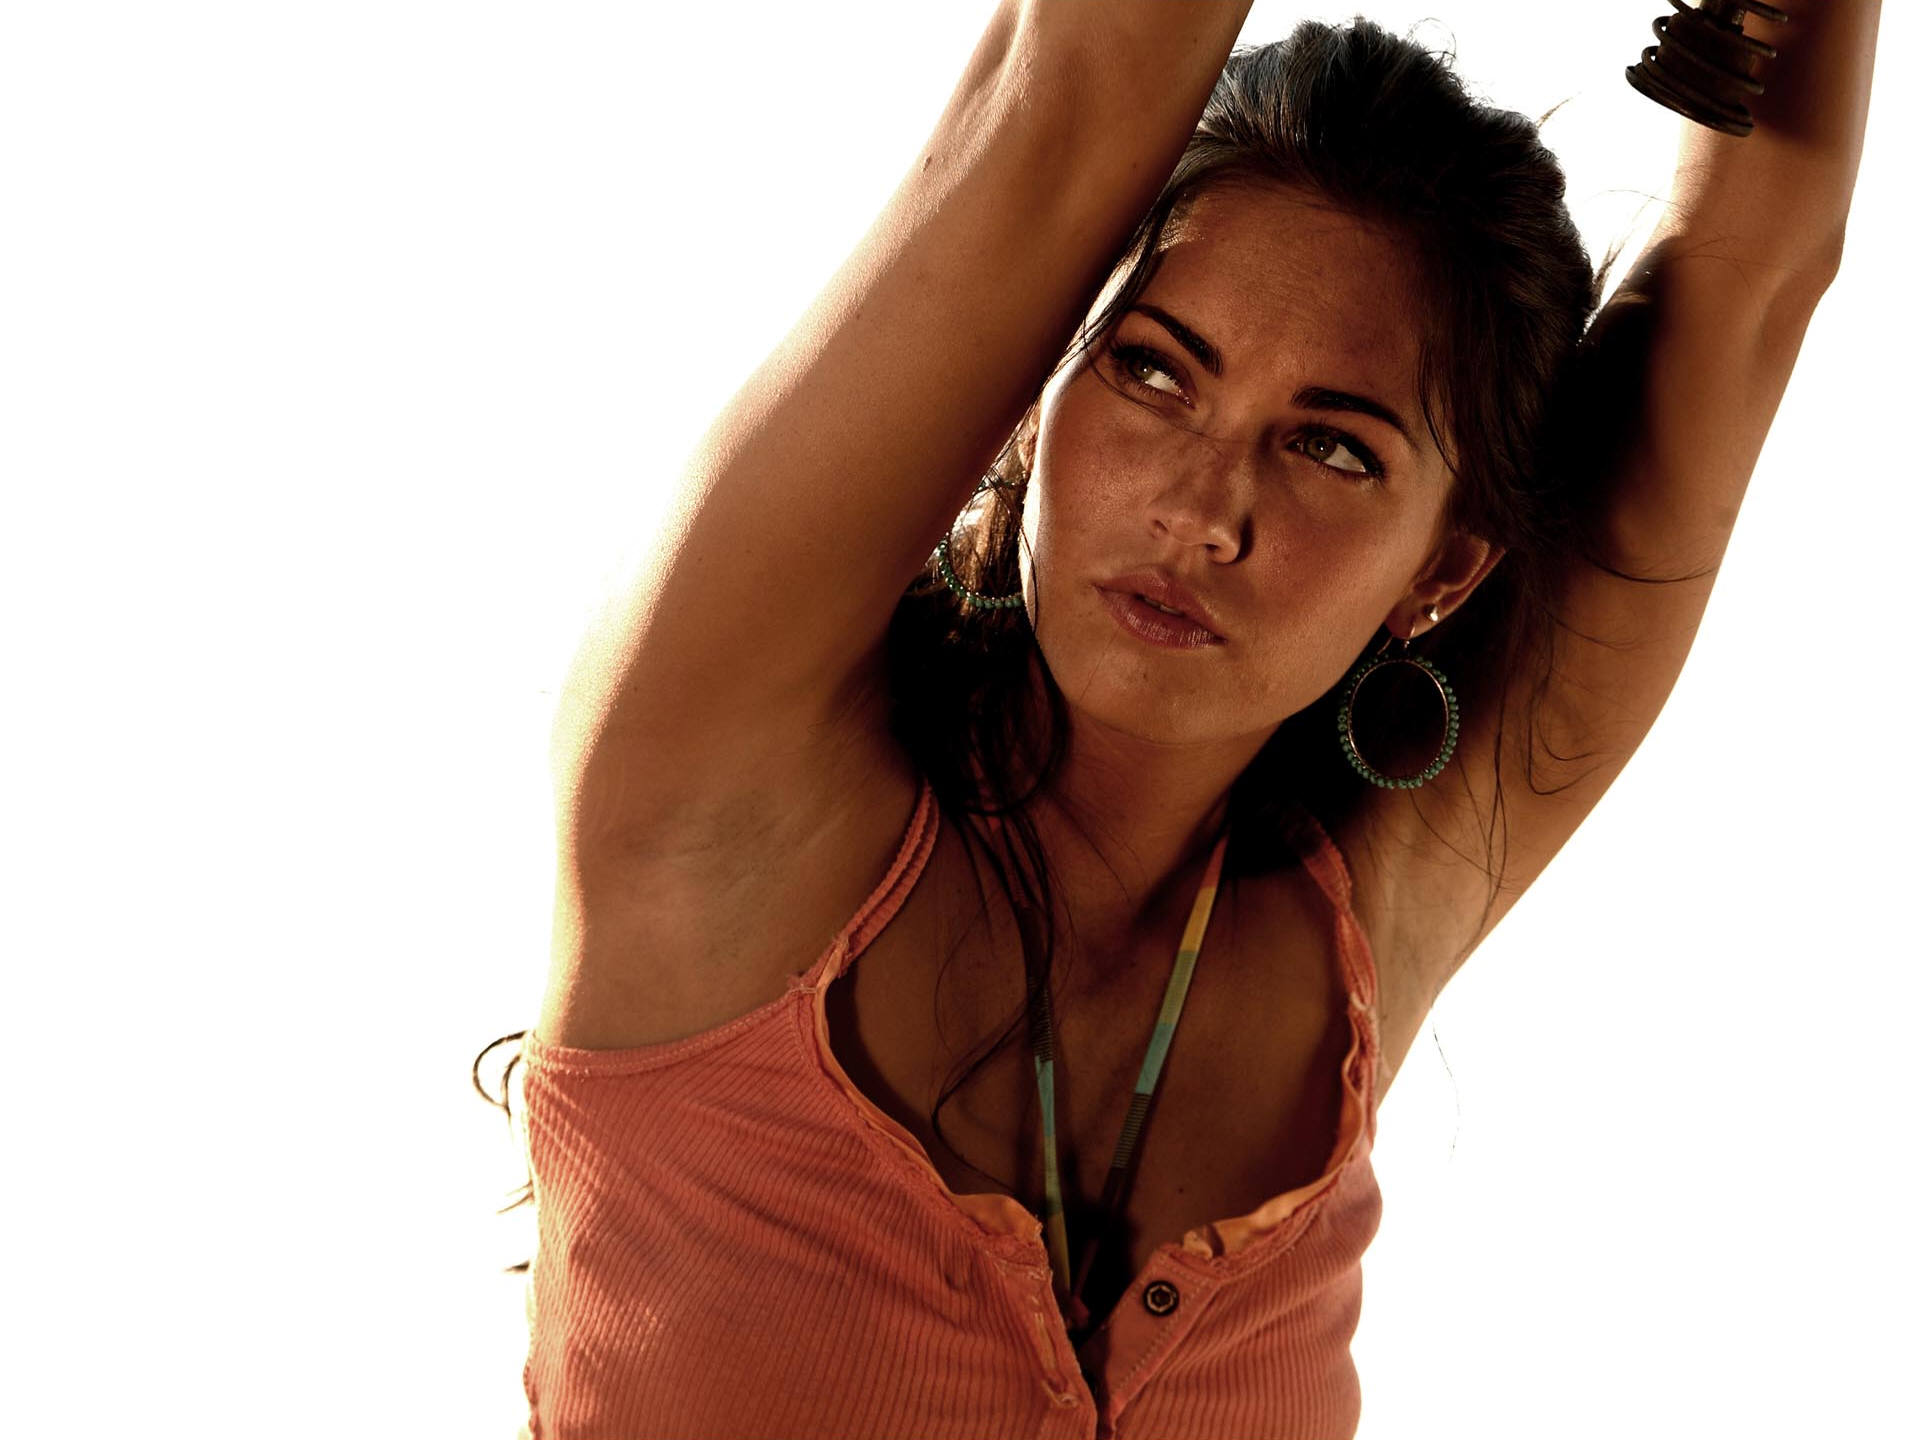 Megan Fox (22) 471.85 Kb